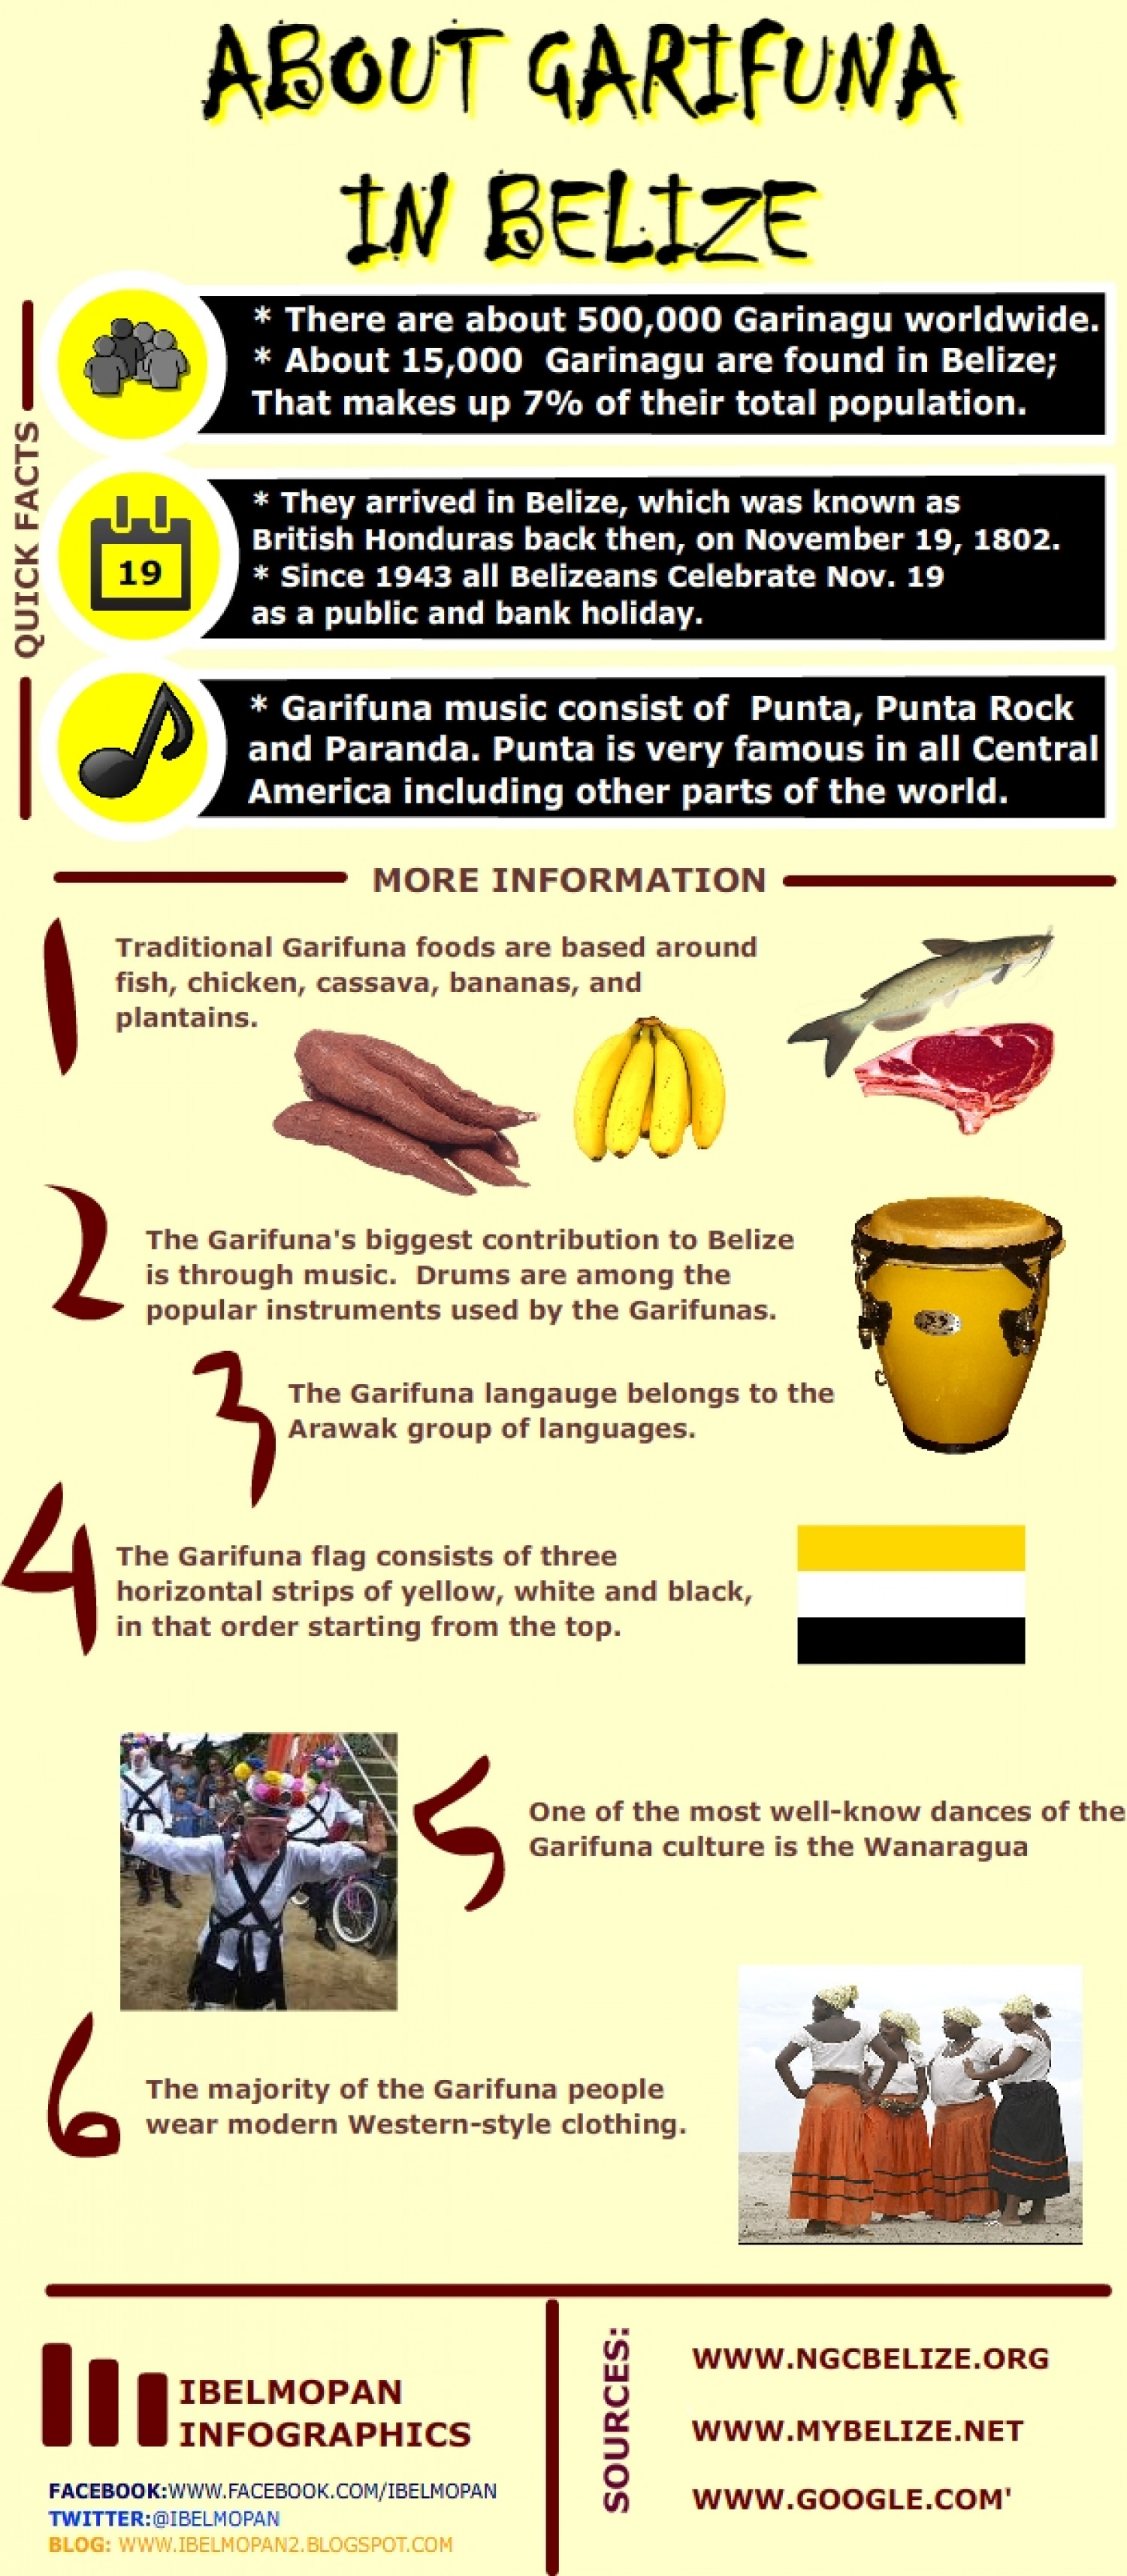 About Garifuna in Belize Infographic